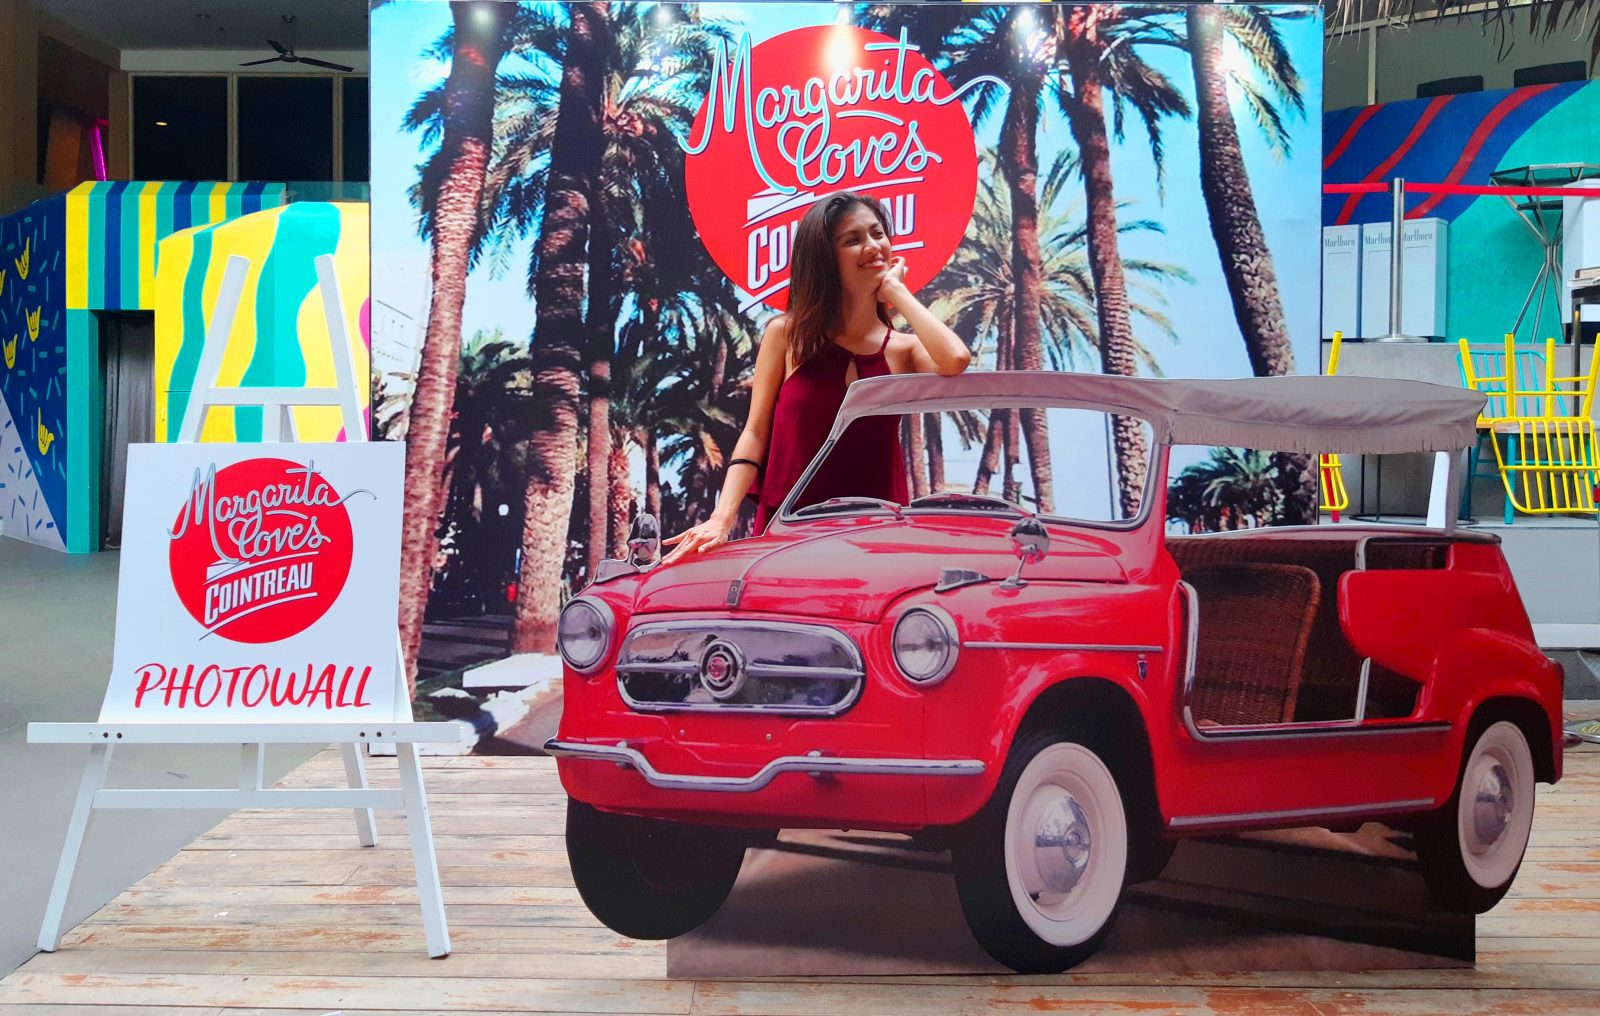 Margarita Loves Cointreau PH : Soiree to acapulco | catchingcarla.com